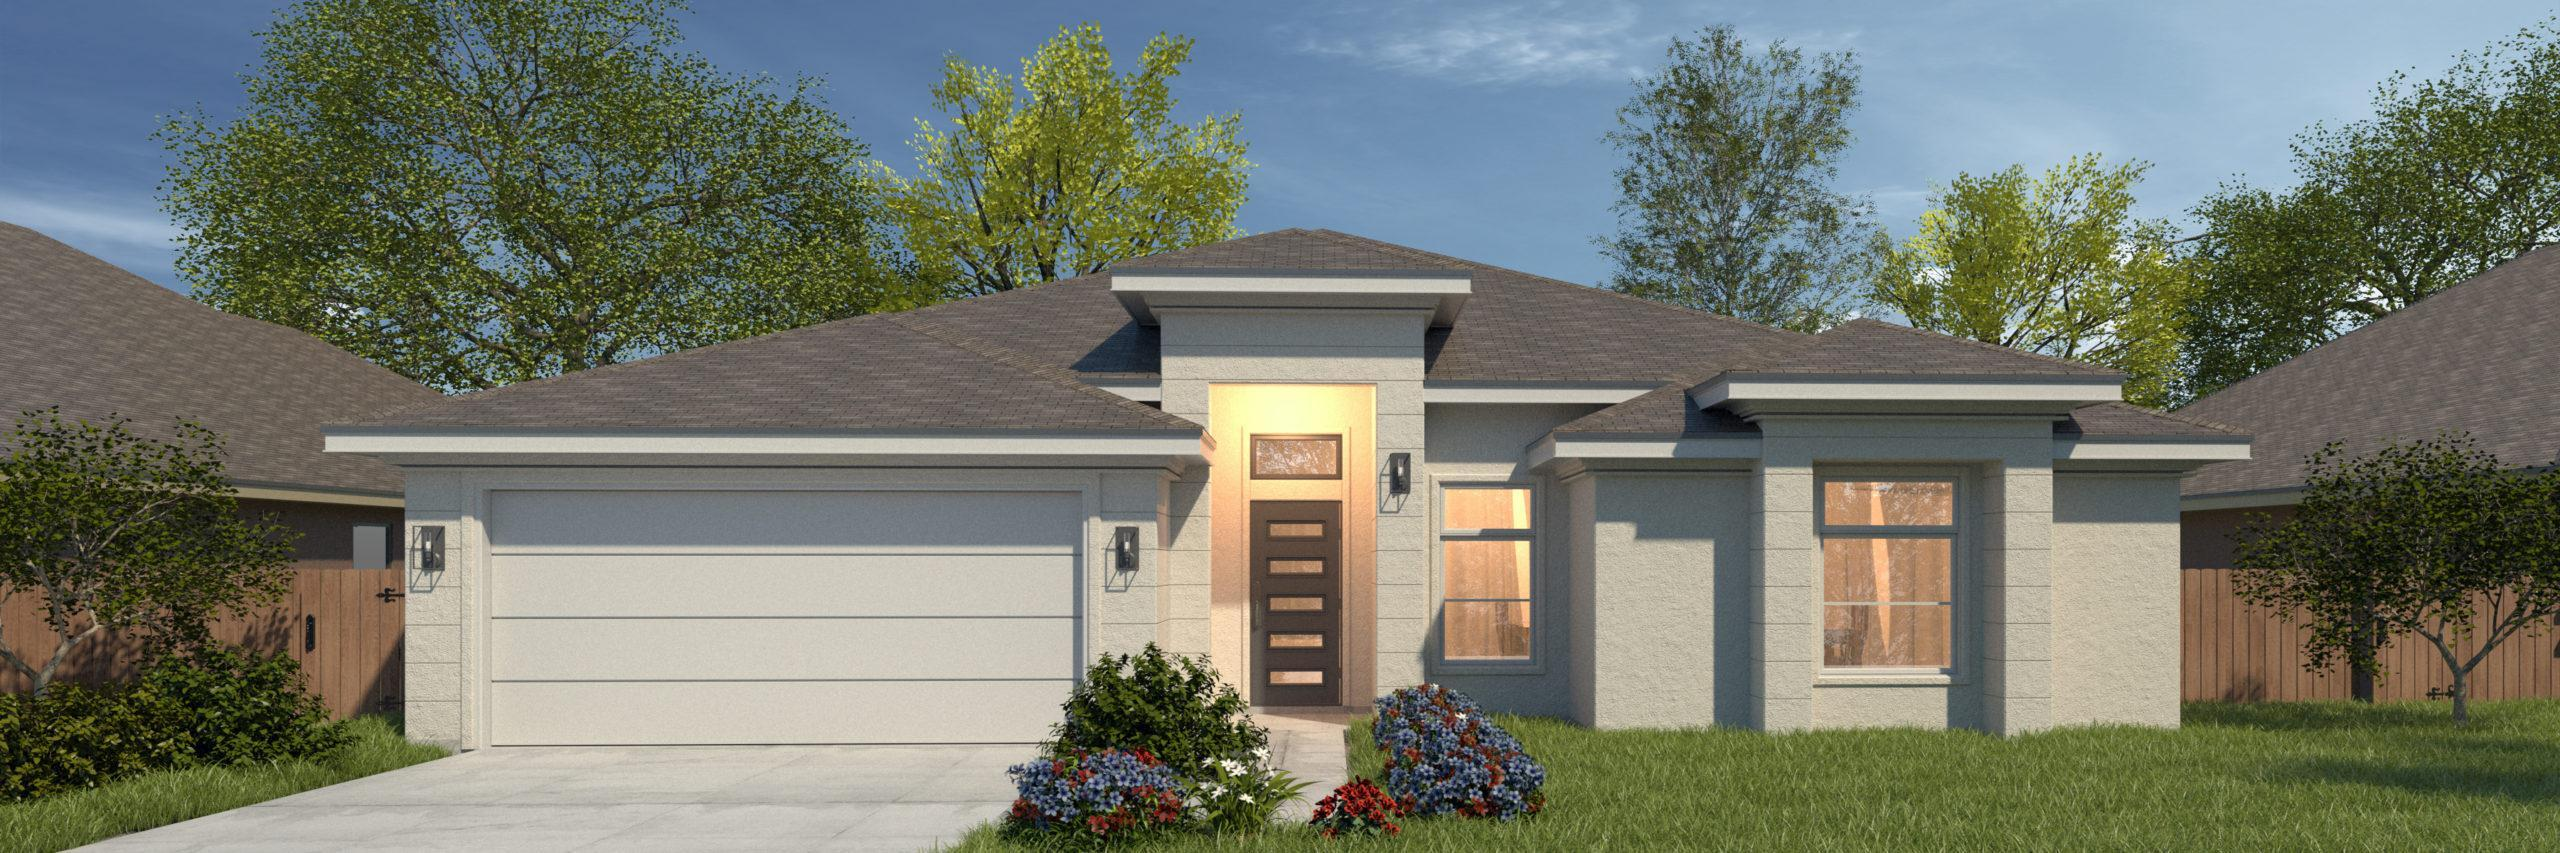 Exterior featured in the Barceledo II By WestWind Homes in Rio Grande Valley, TX